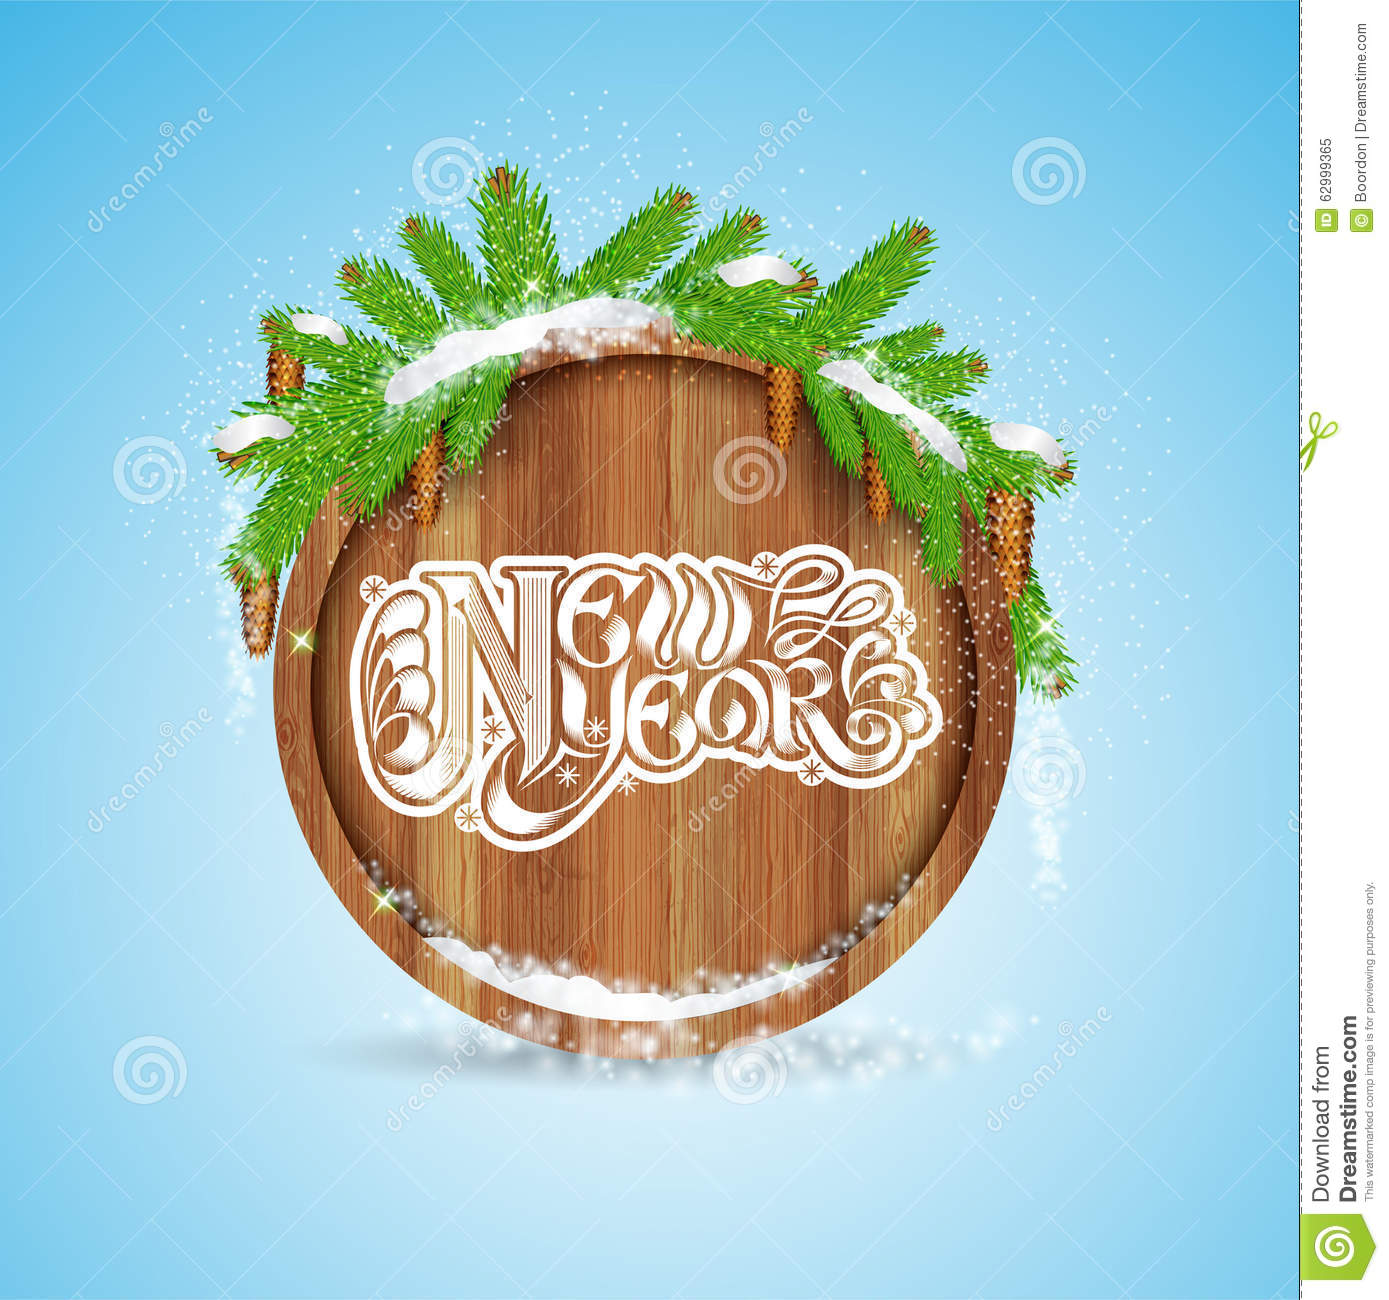 New year lettering on round wood border with snowy fir tree branch and cones on blue